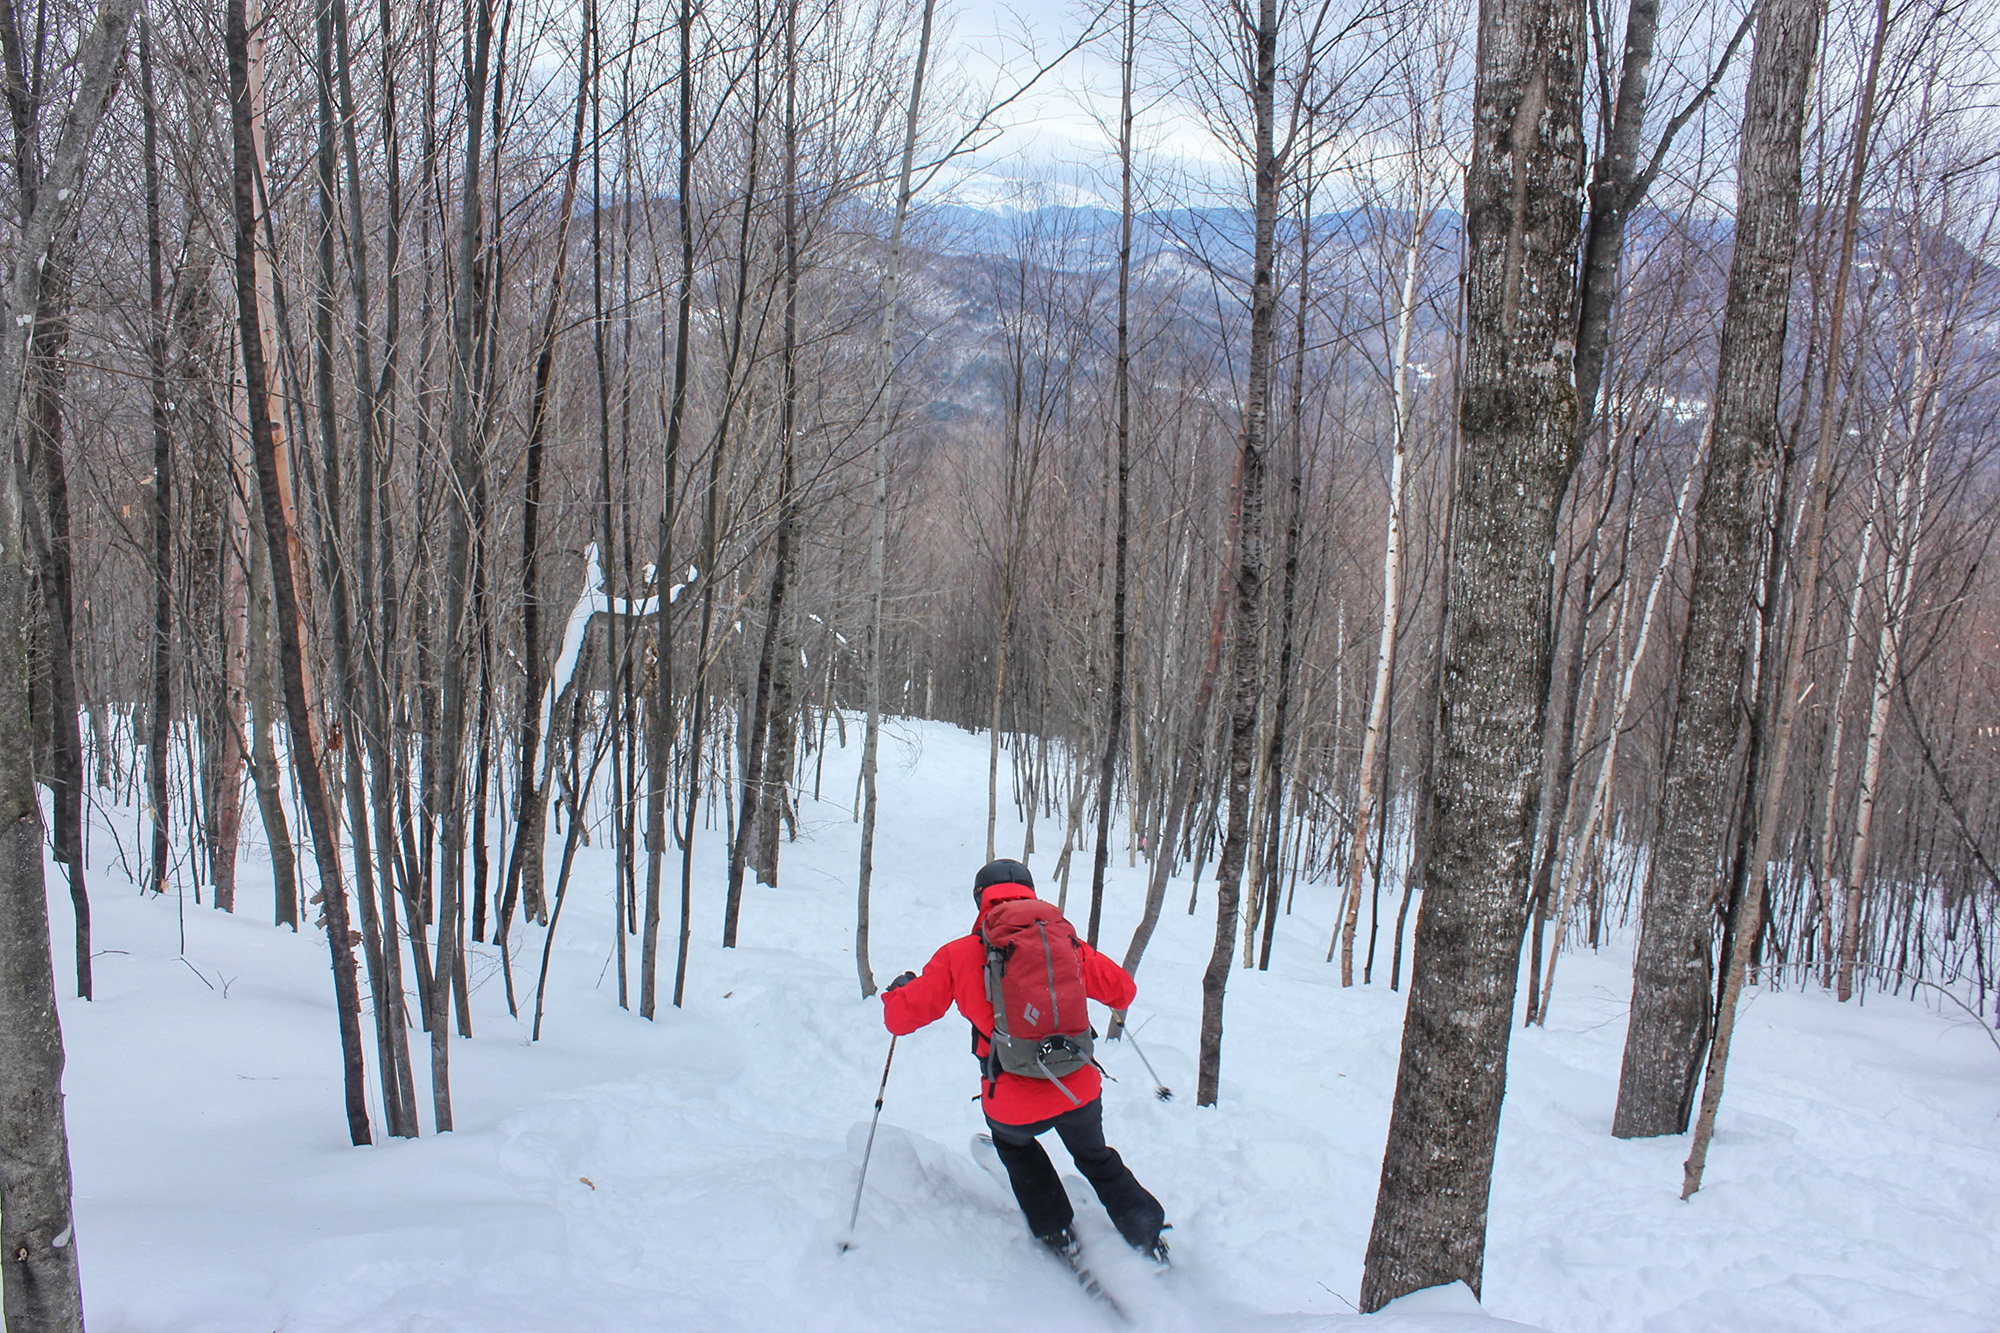 Skiing Maple Villa with Mount Washington in the distance through the trees. | Credit: Tim Peck